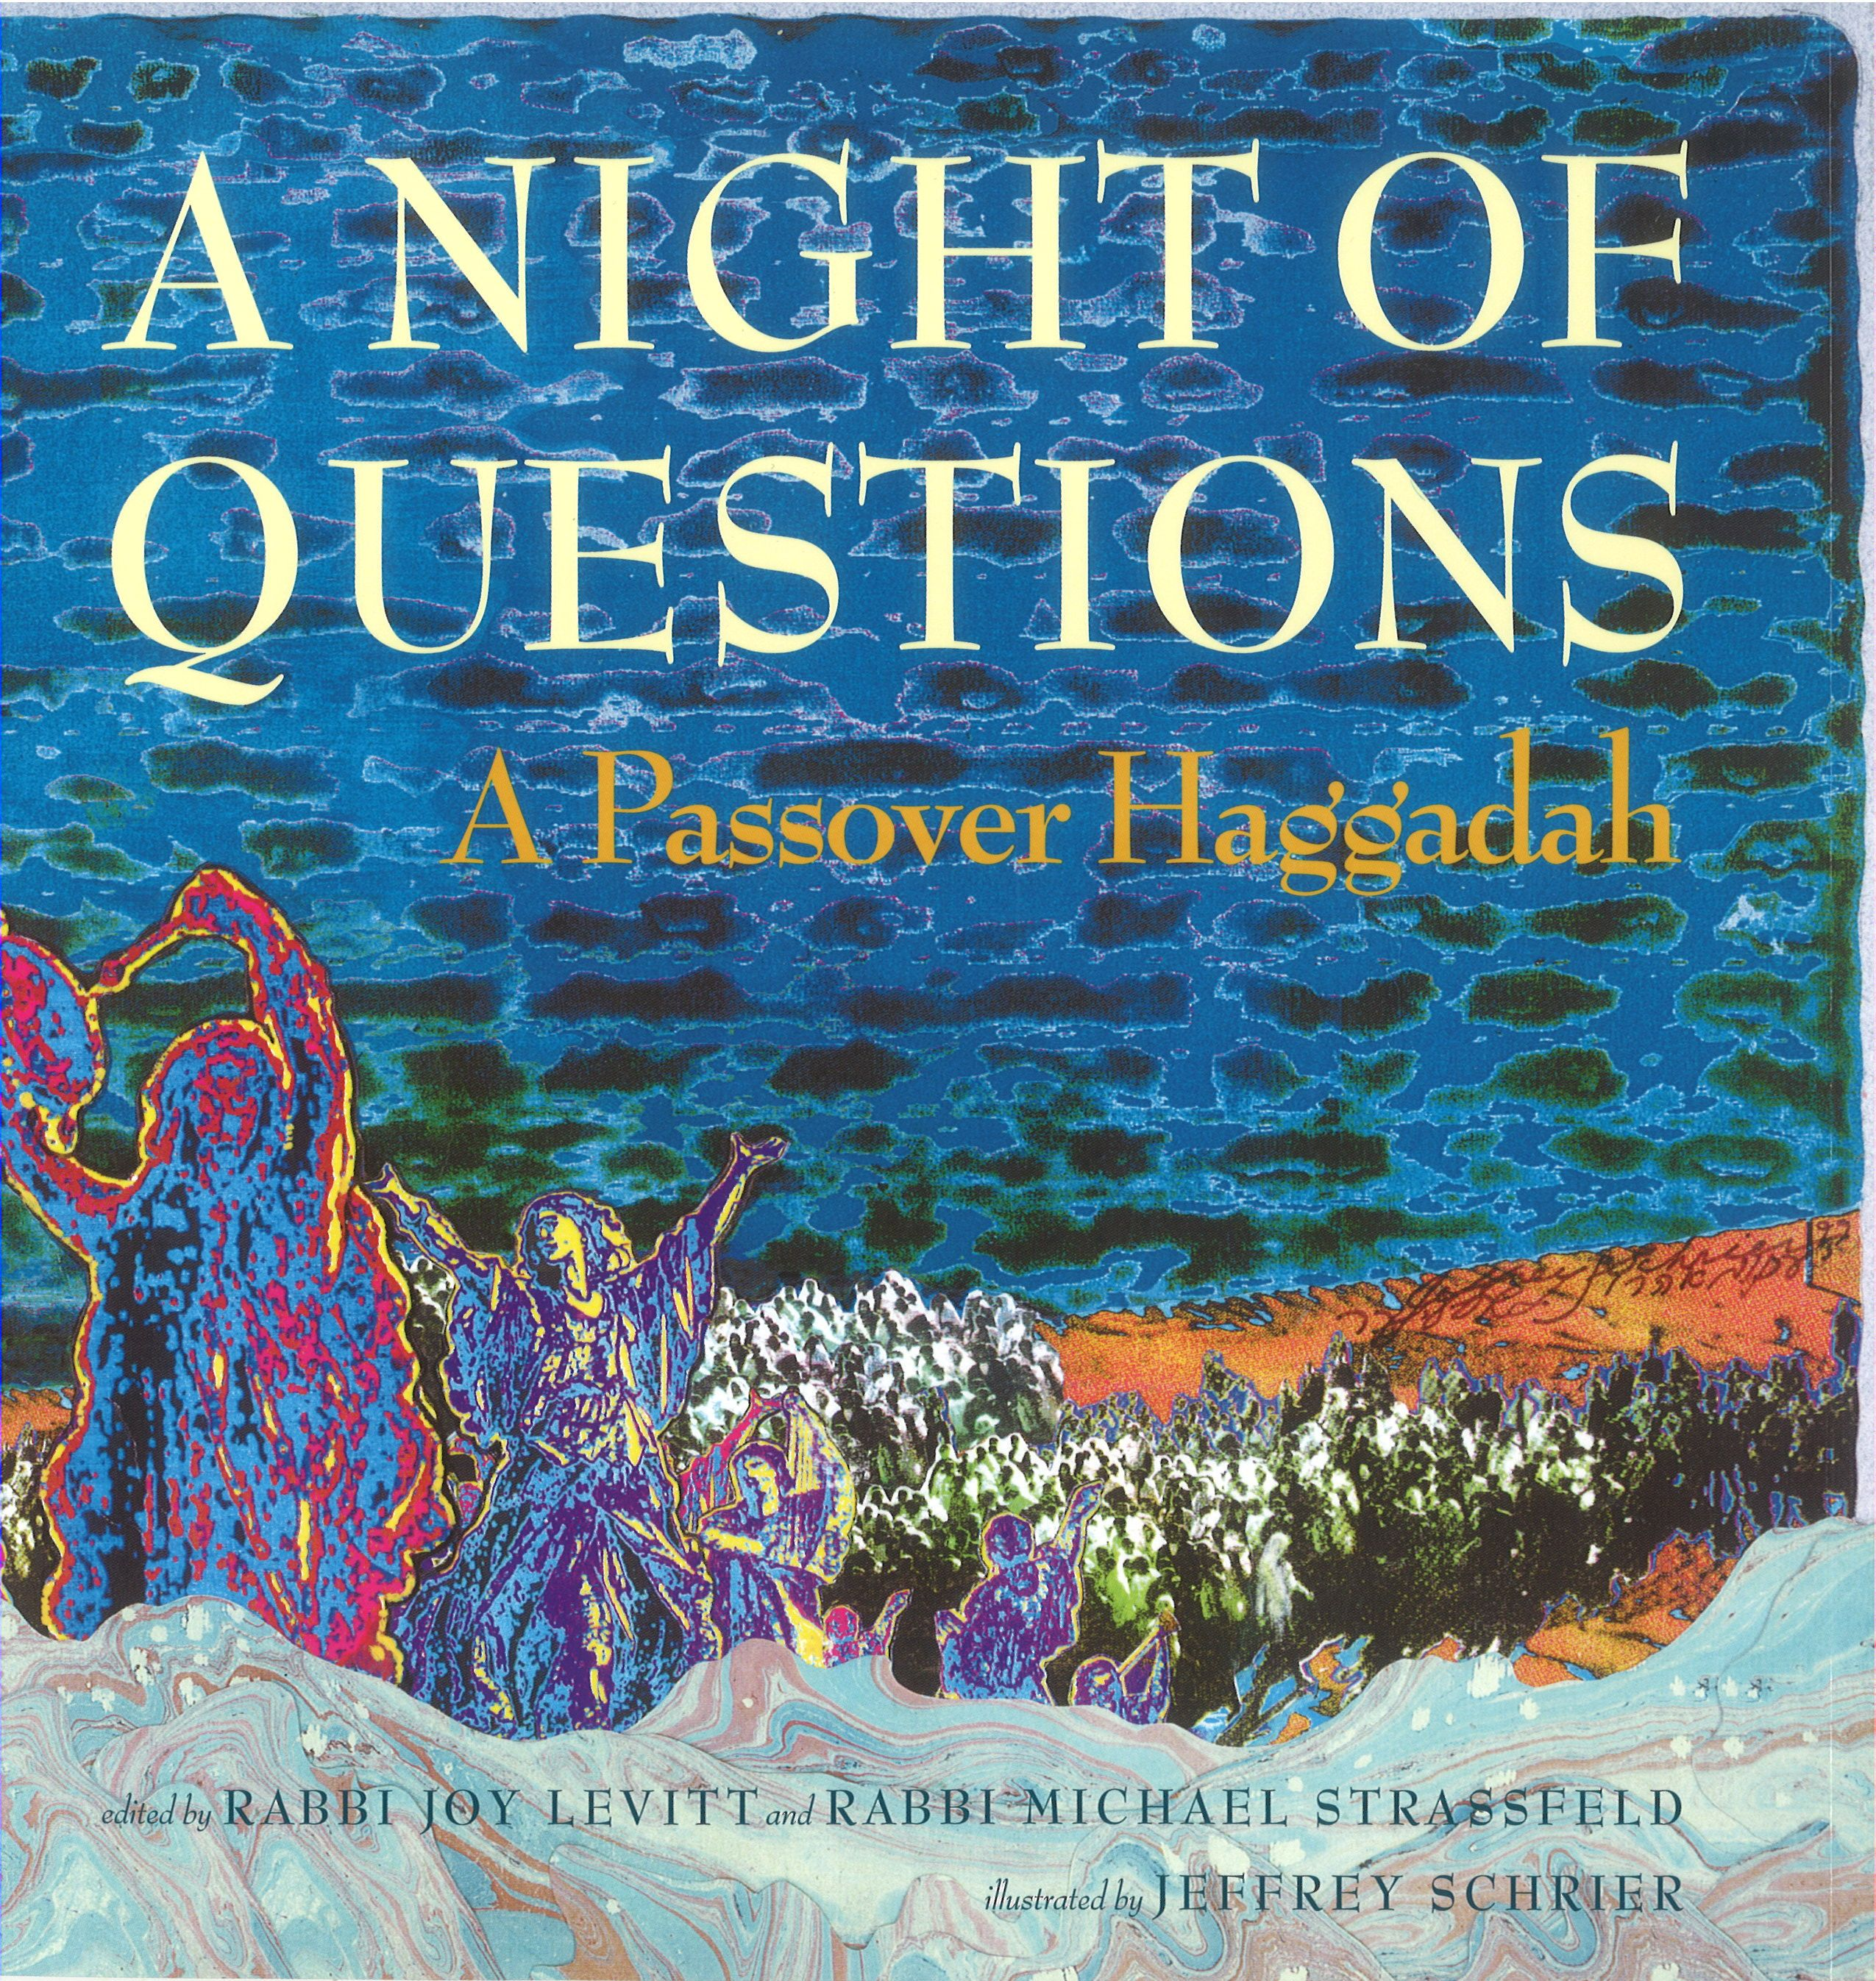 a-night-of-questions-soft-cover-haggadah.jpg